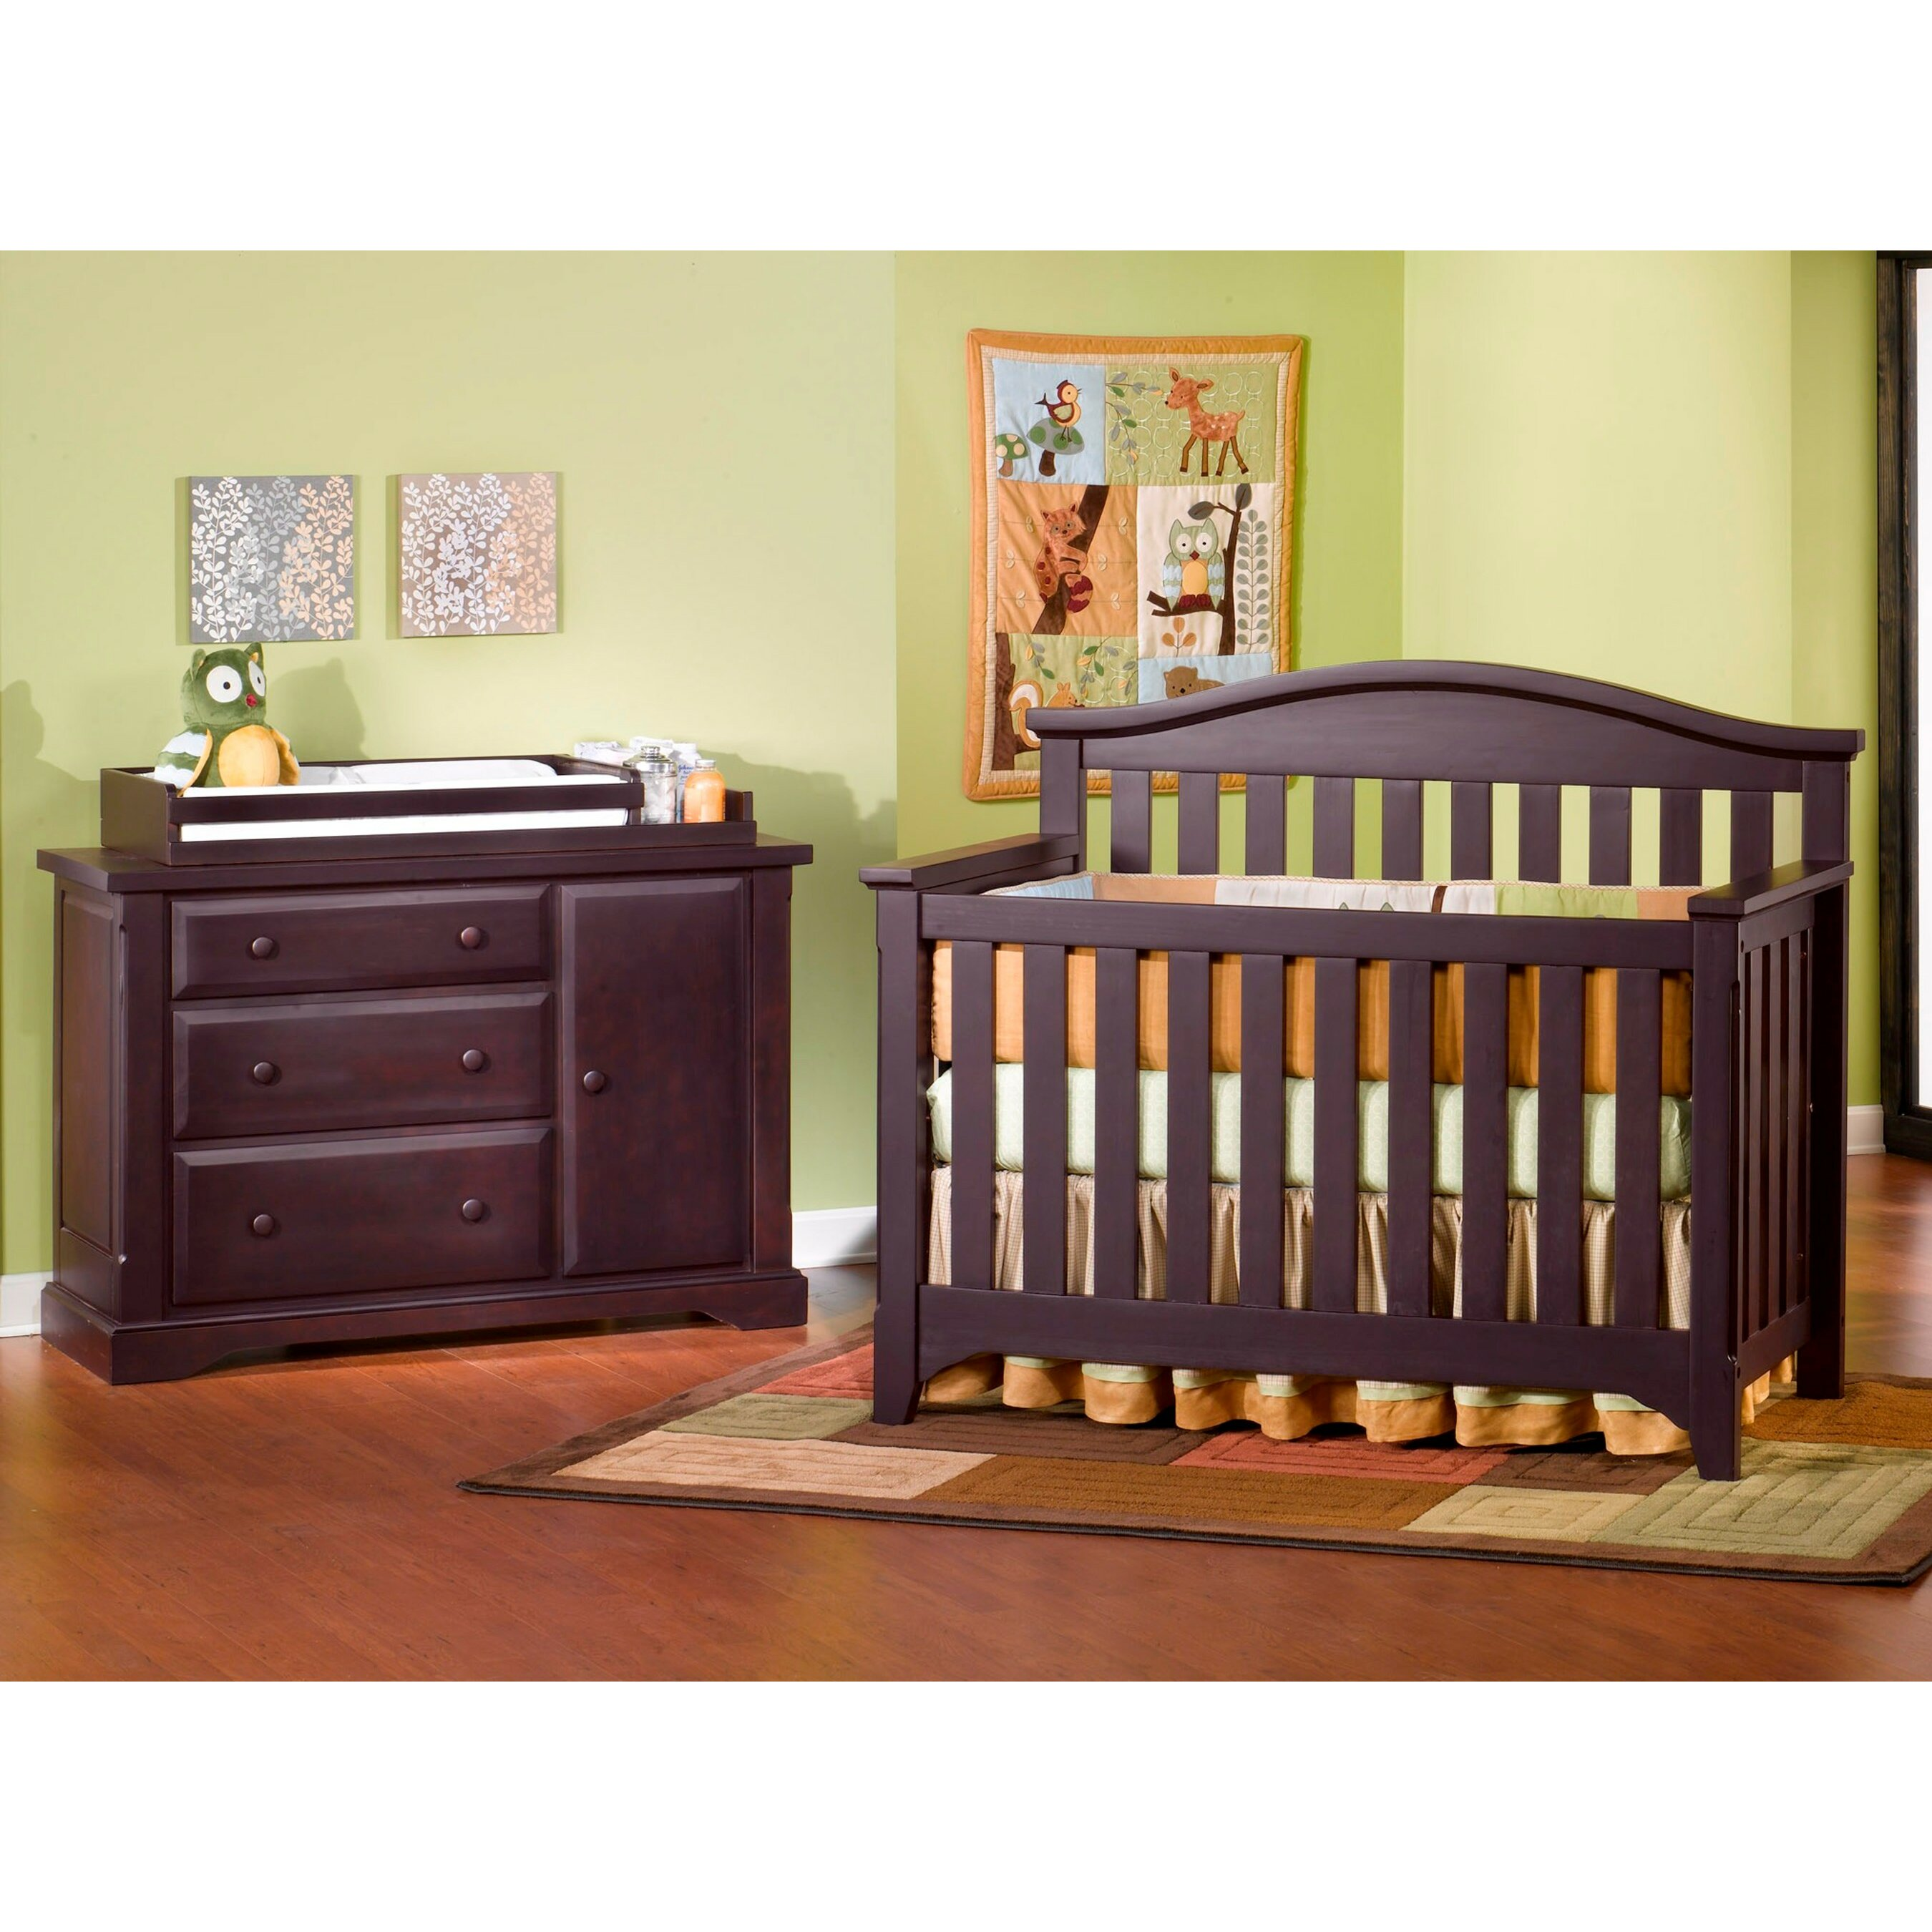 Child Craft Hawthorne Nursery 3 Piece Convertible Crib Set